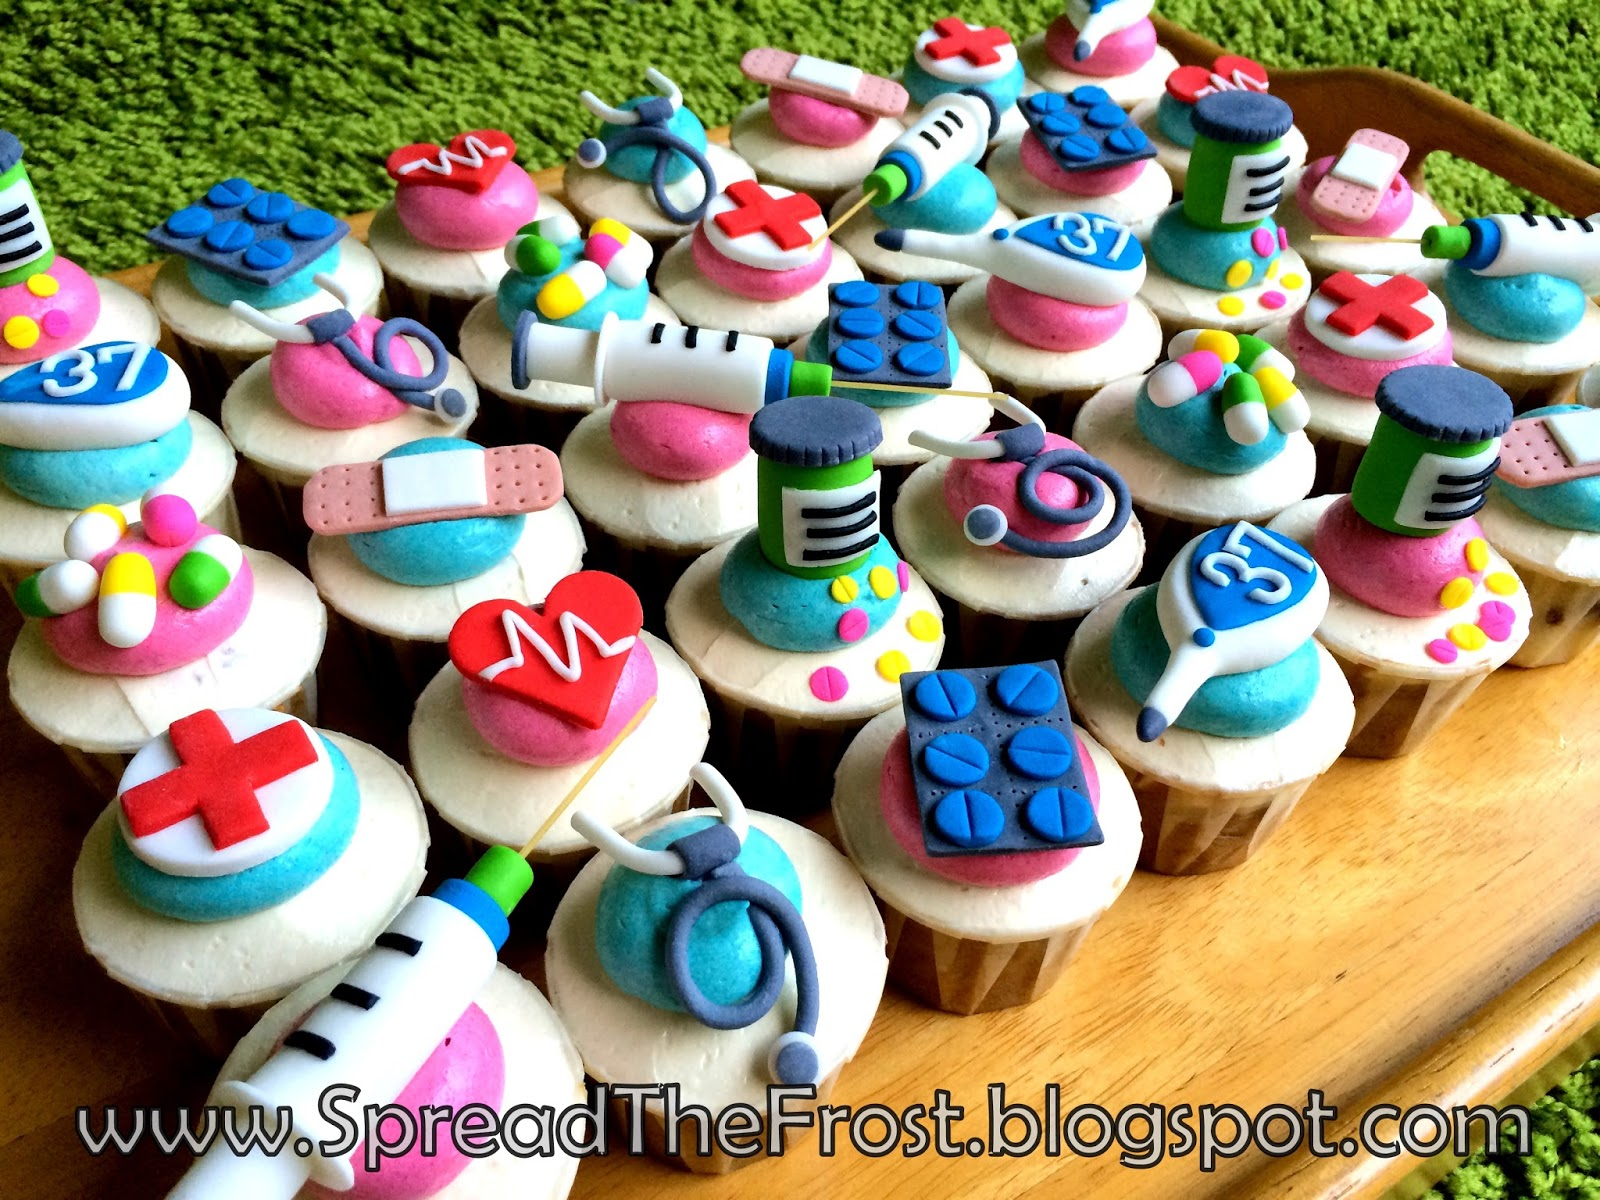 http://spreadthefrost.blogspot.com/2015/02/doctor-cupcakes.html